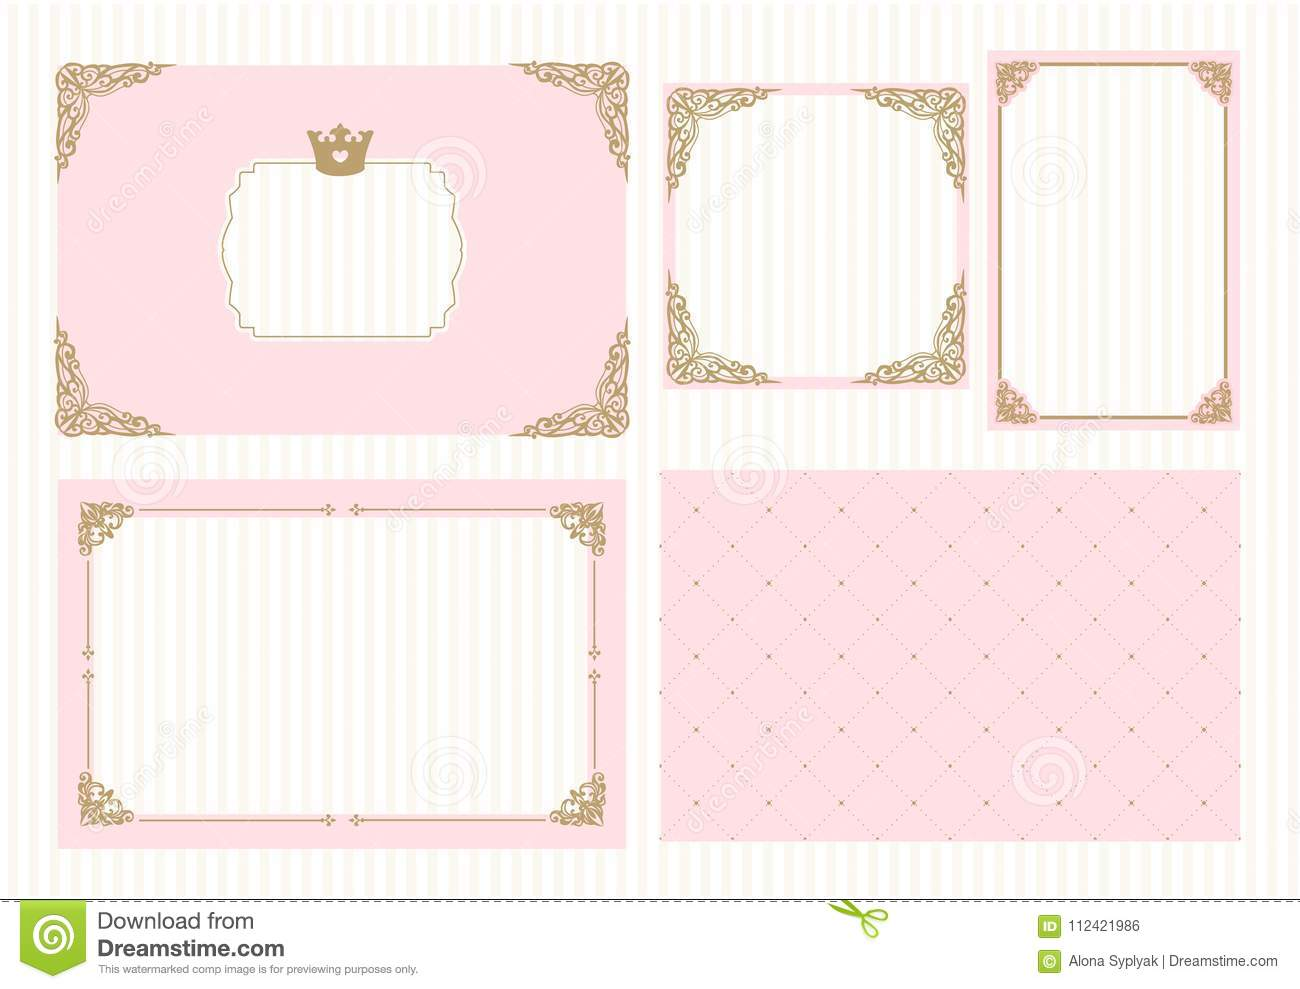 Baby Shower Border Templates Free